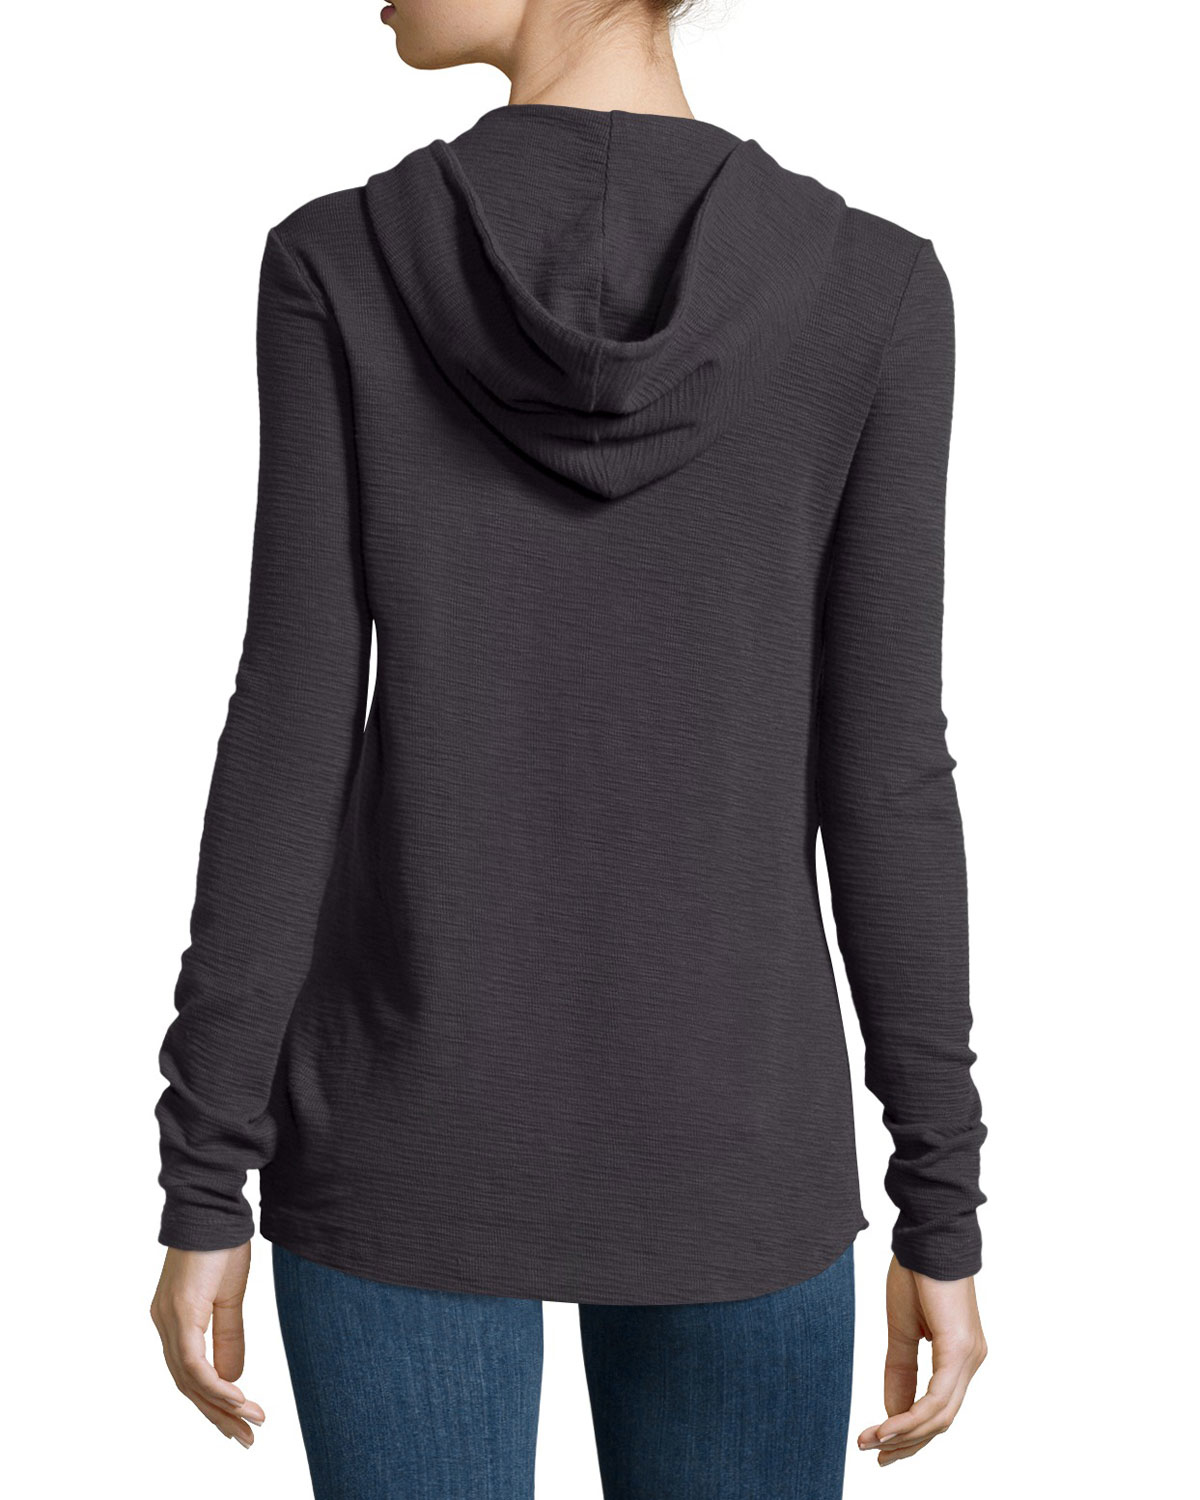 James perse thermal hooded henley in black lyst for James perse henley shirt